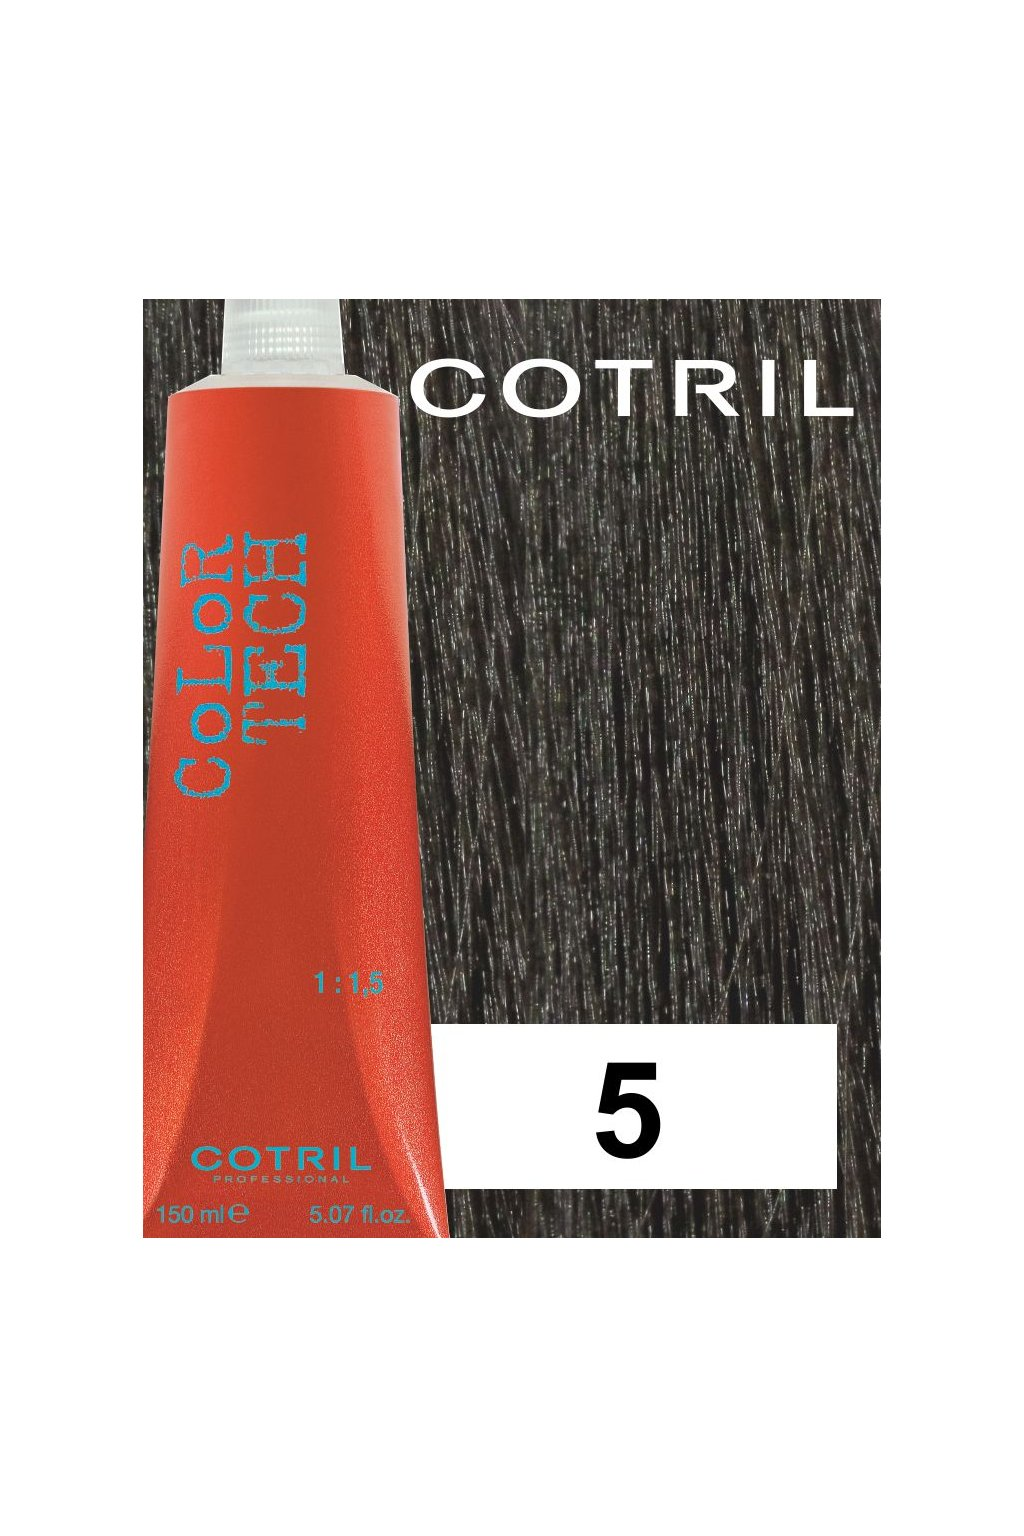 5 ct cotril